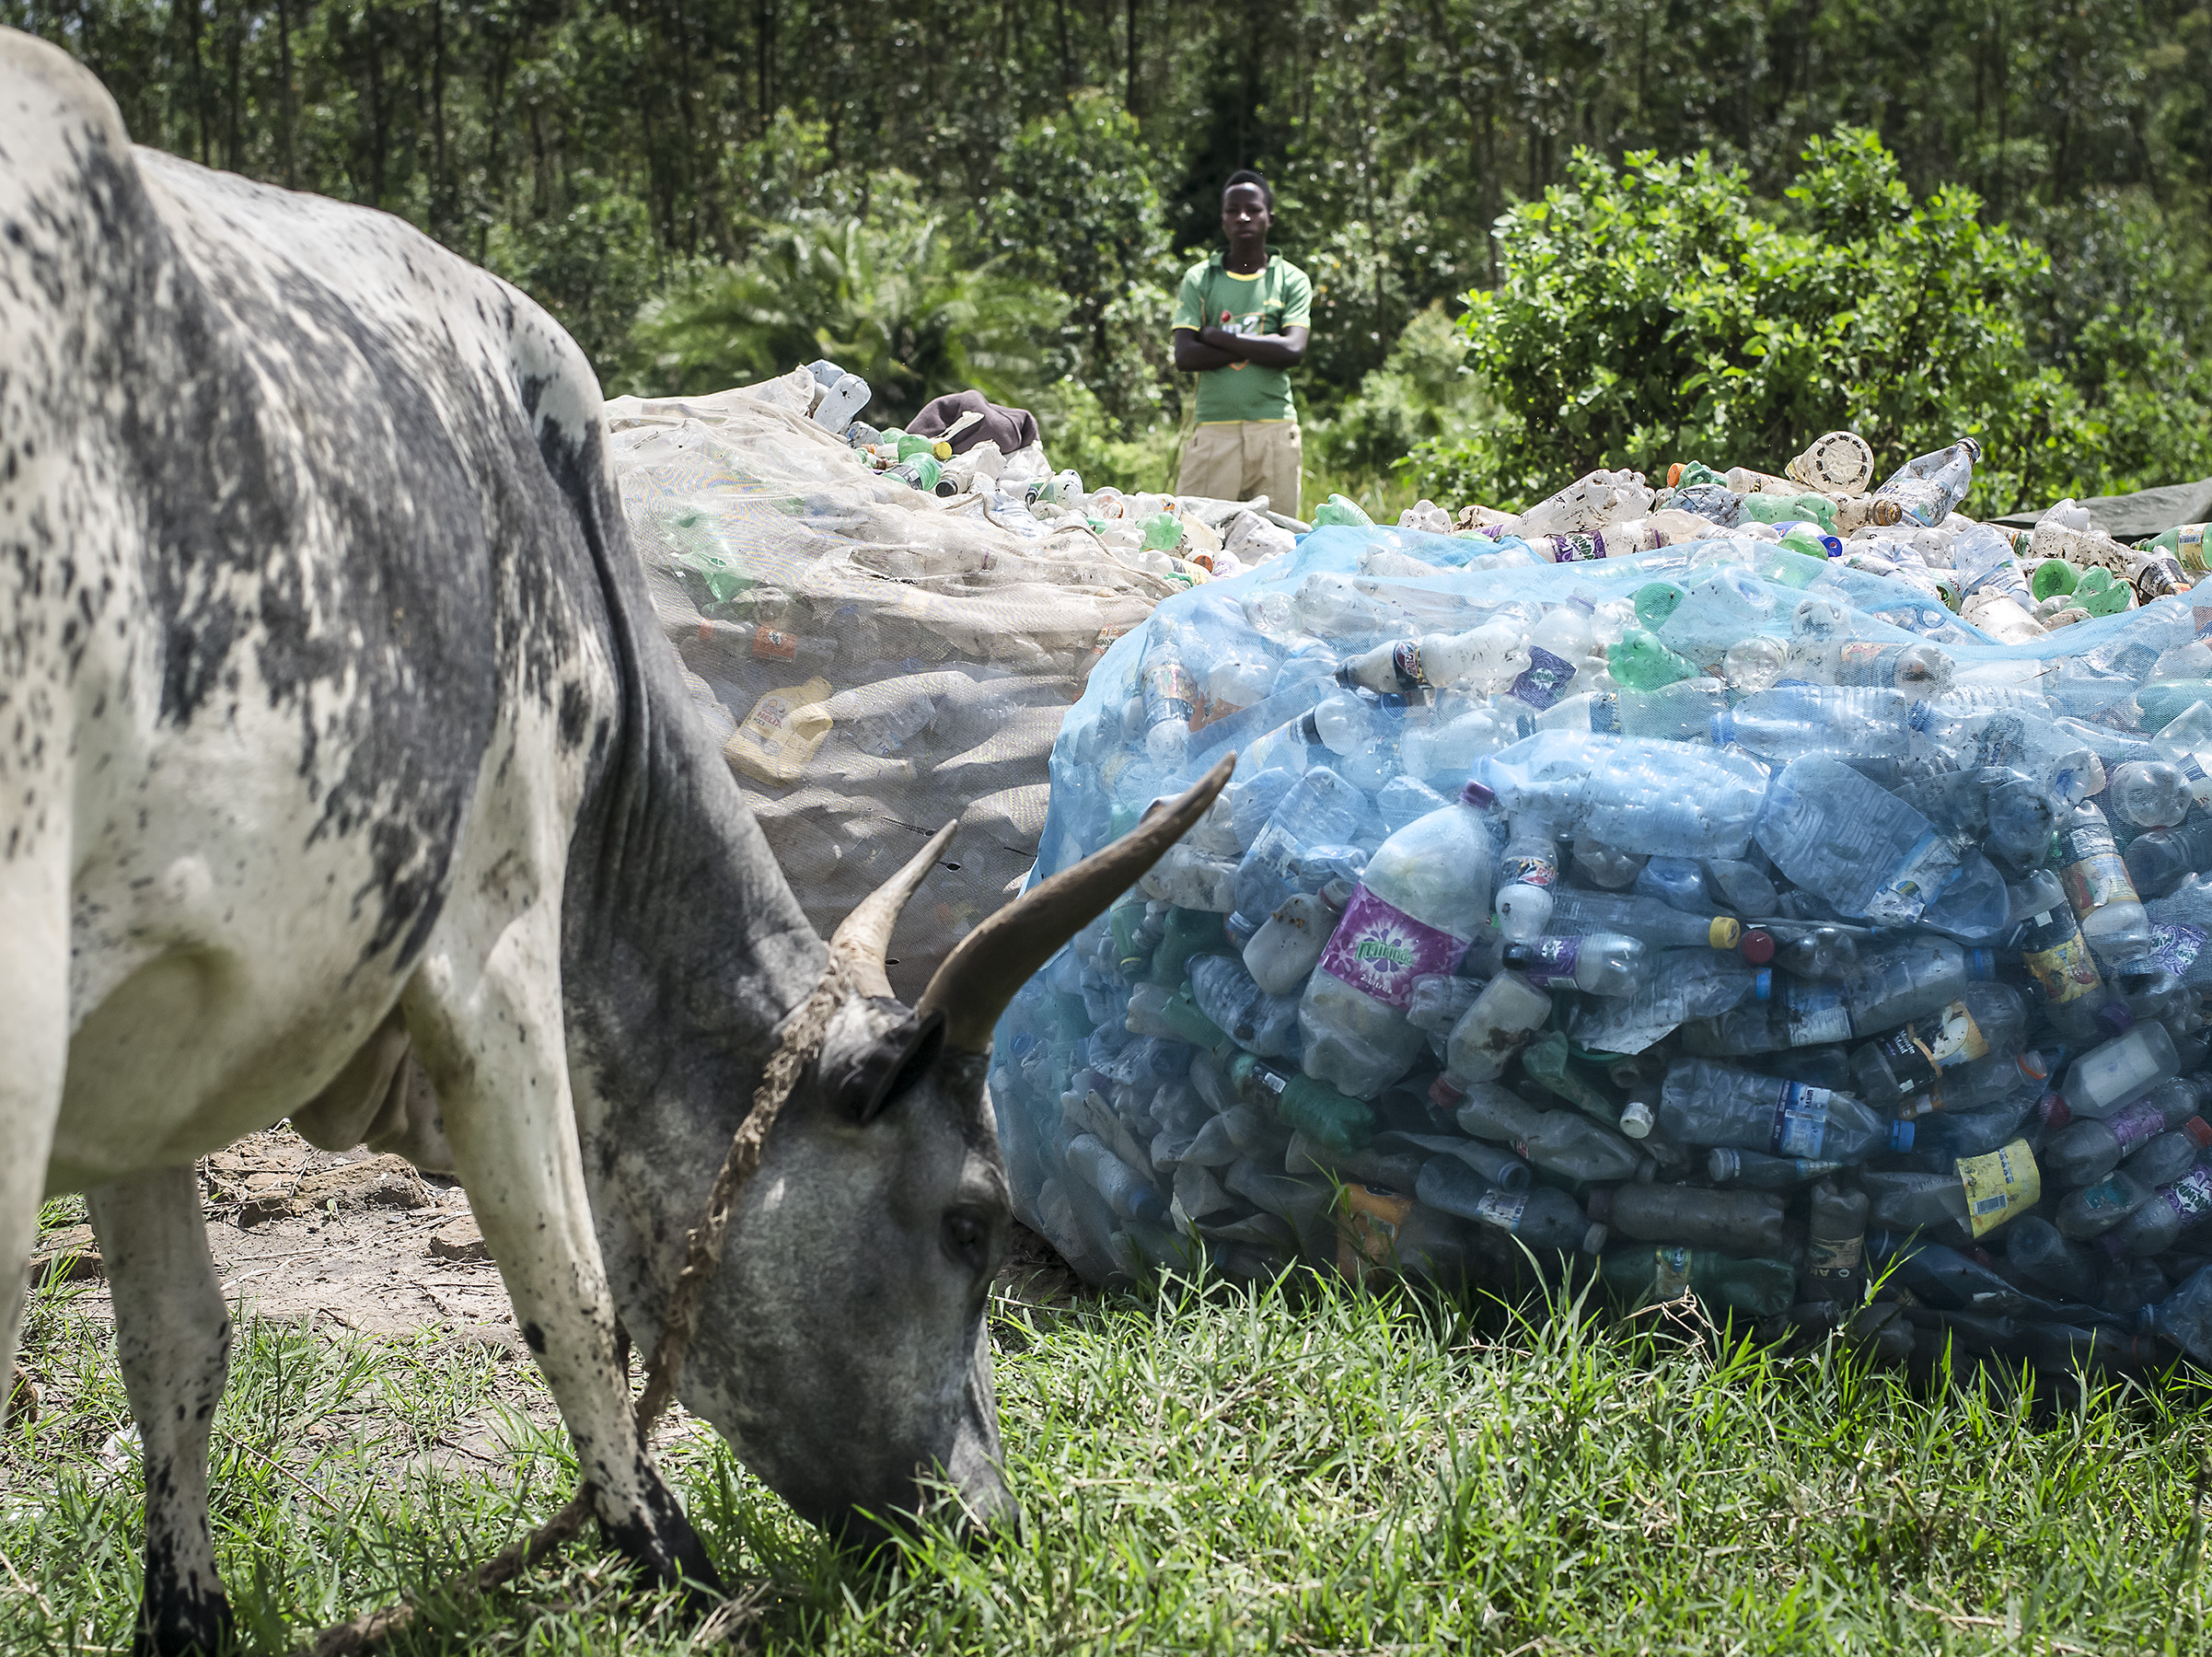 Many times informal recyclers are ashamed of the work they do, but just imagine if no one was cleaning the trash being dumped directly into nature. Kabwohe